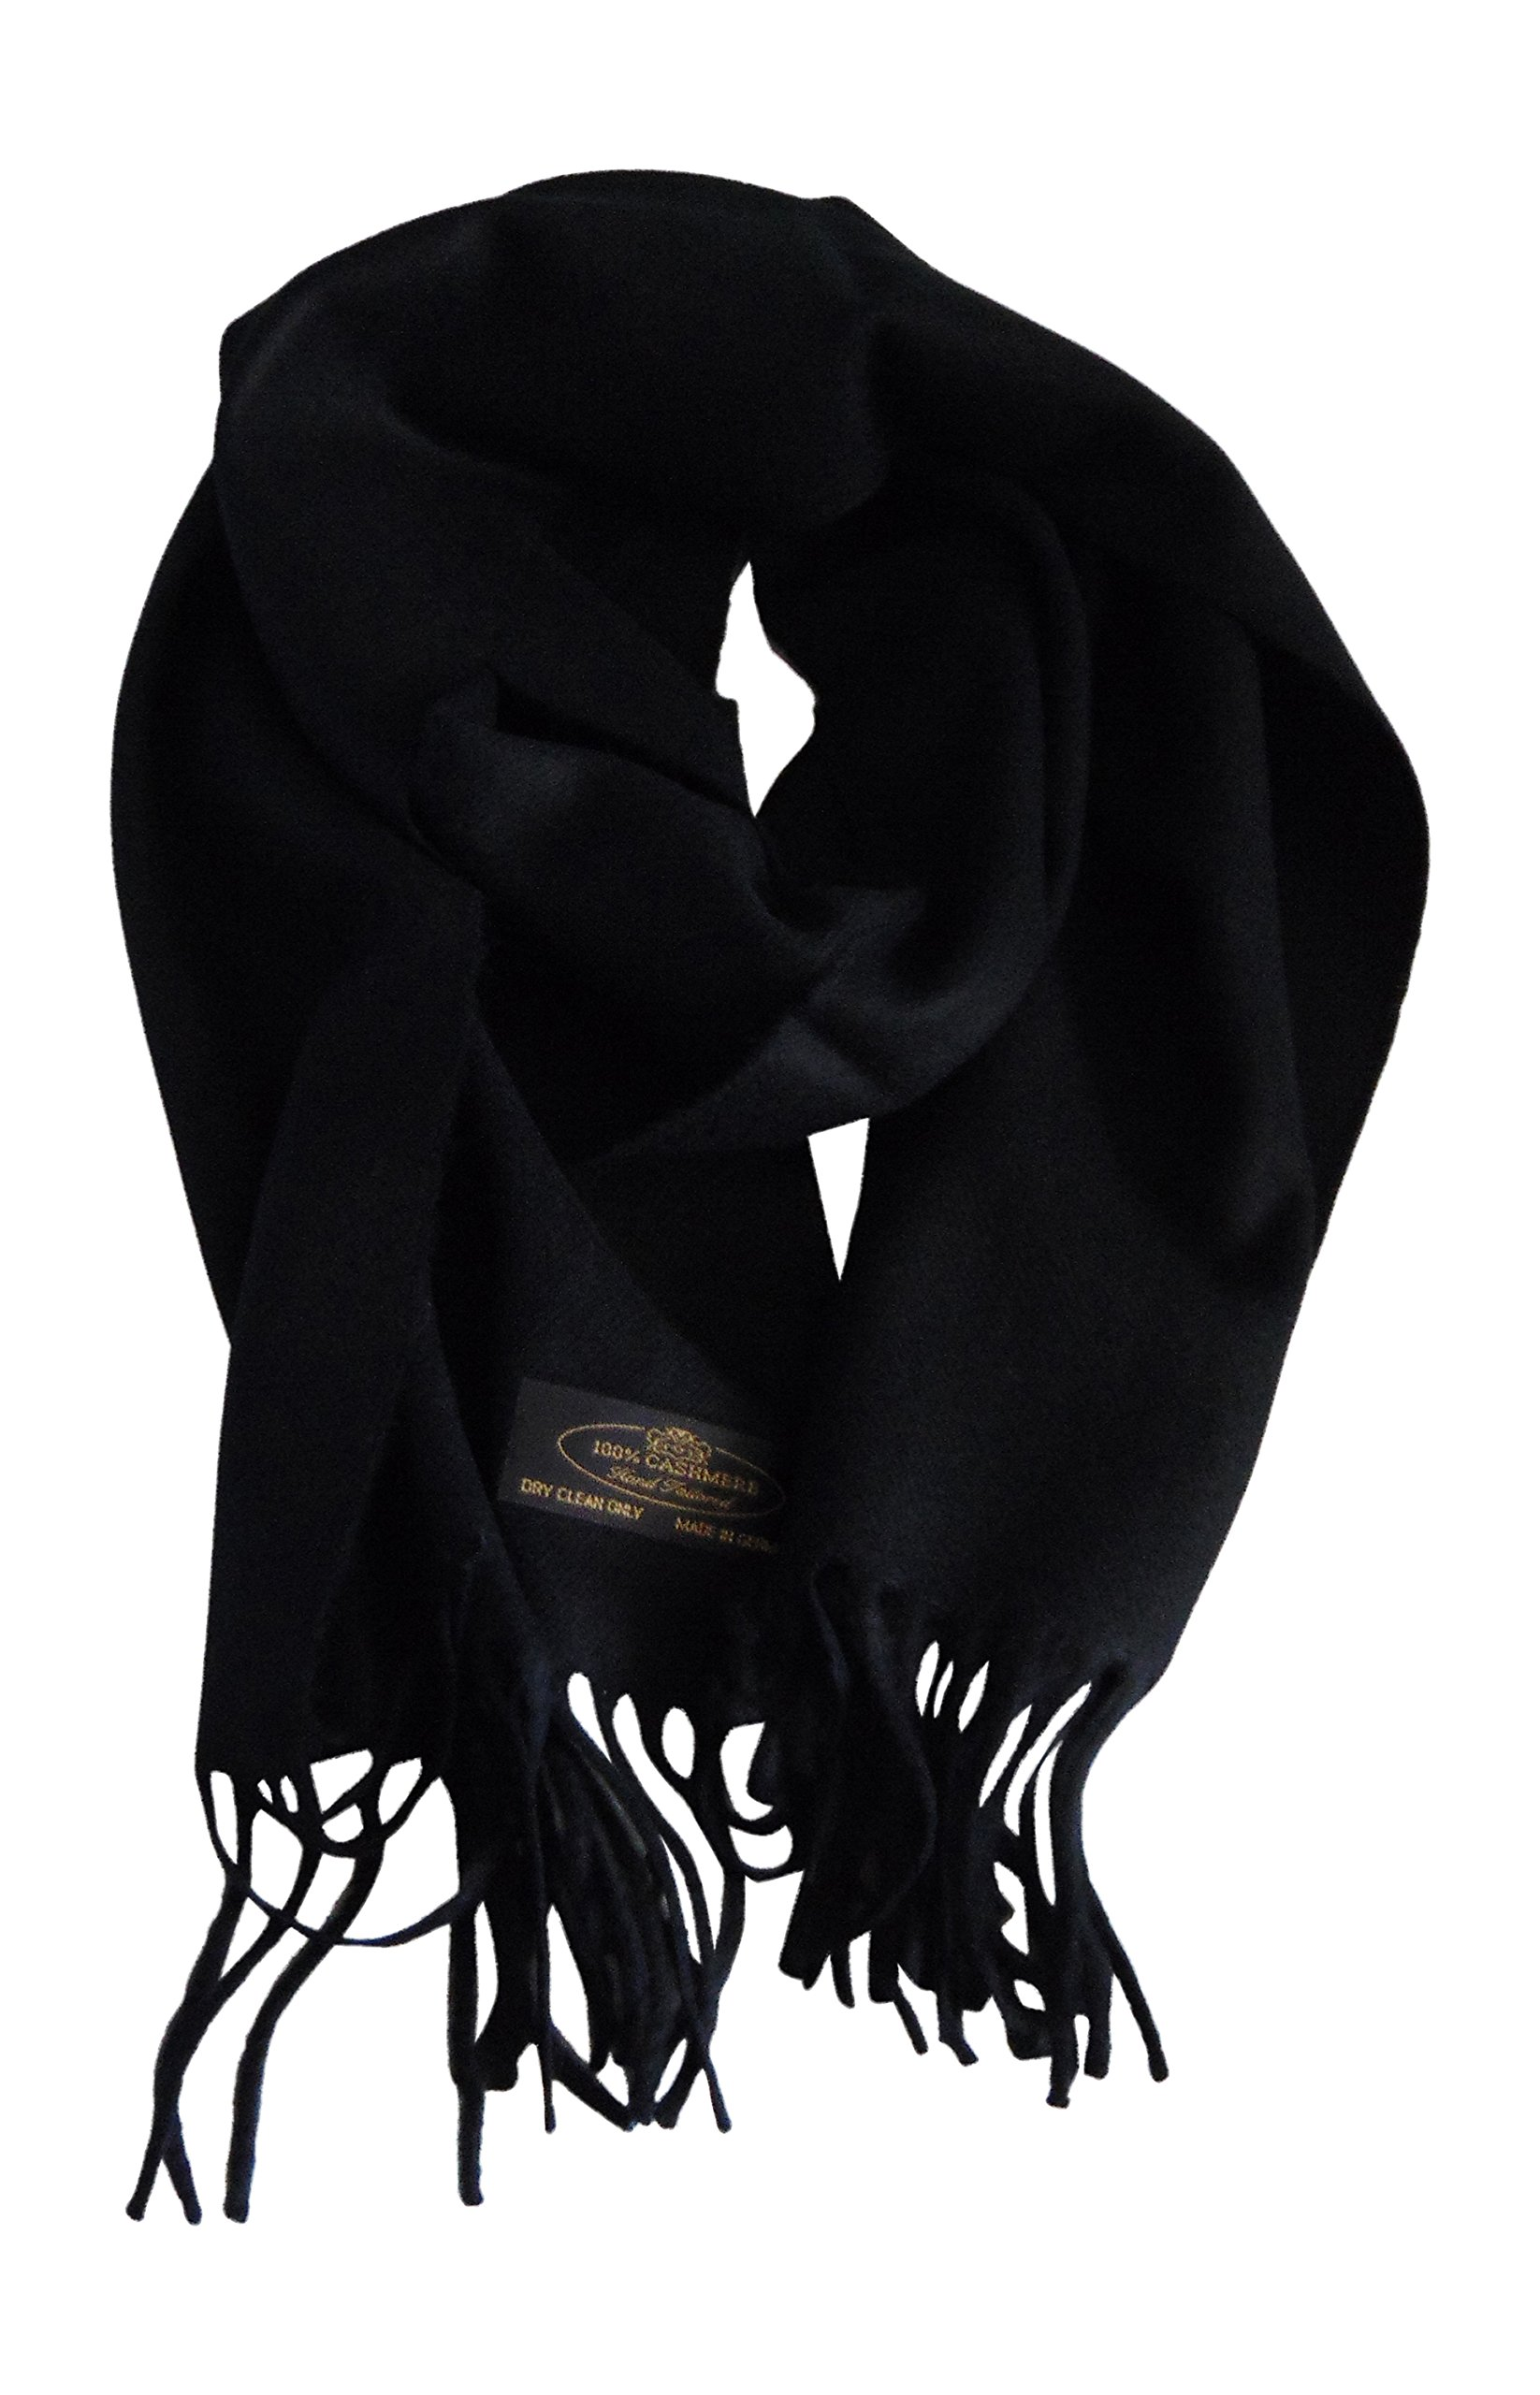 Annys Super Soft 100% Cashmere Scarf 12 X 72 with Gift Bag (Black)